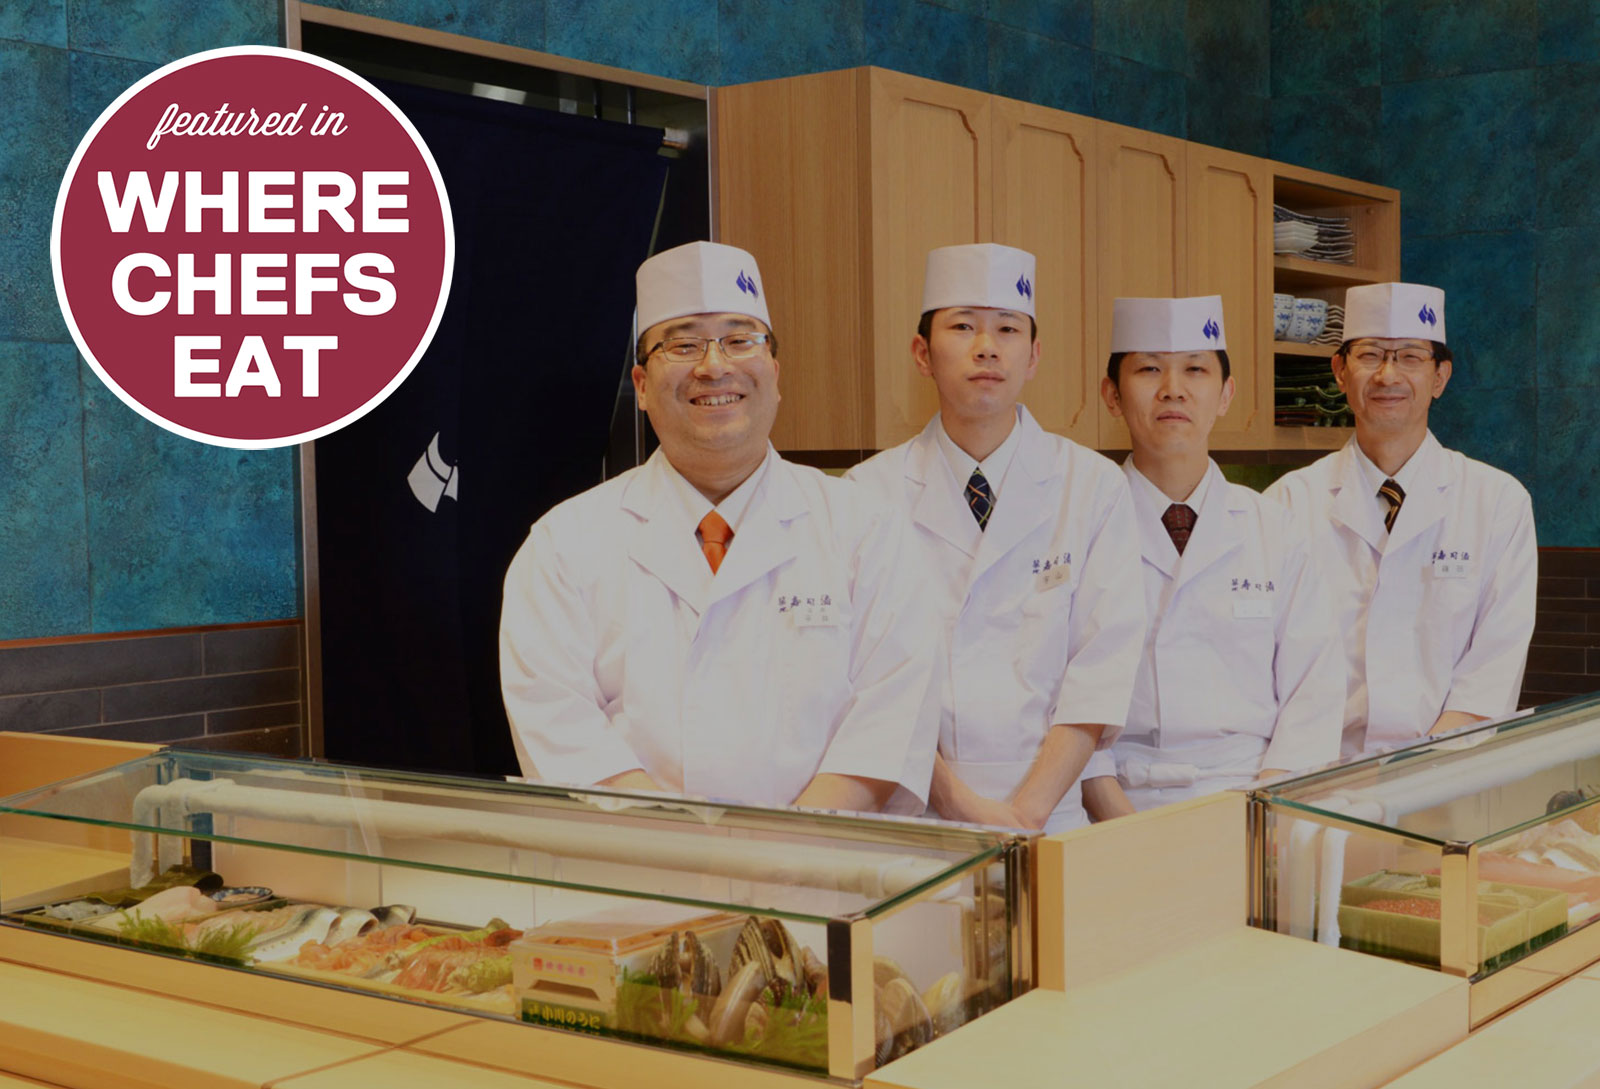 Some of the staff and chefs at Tsukiji Sushisay in Tokyo